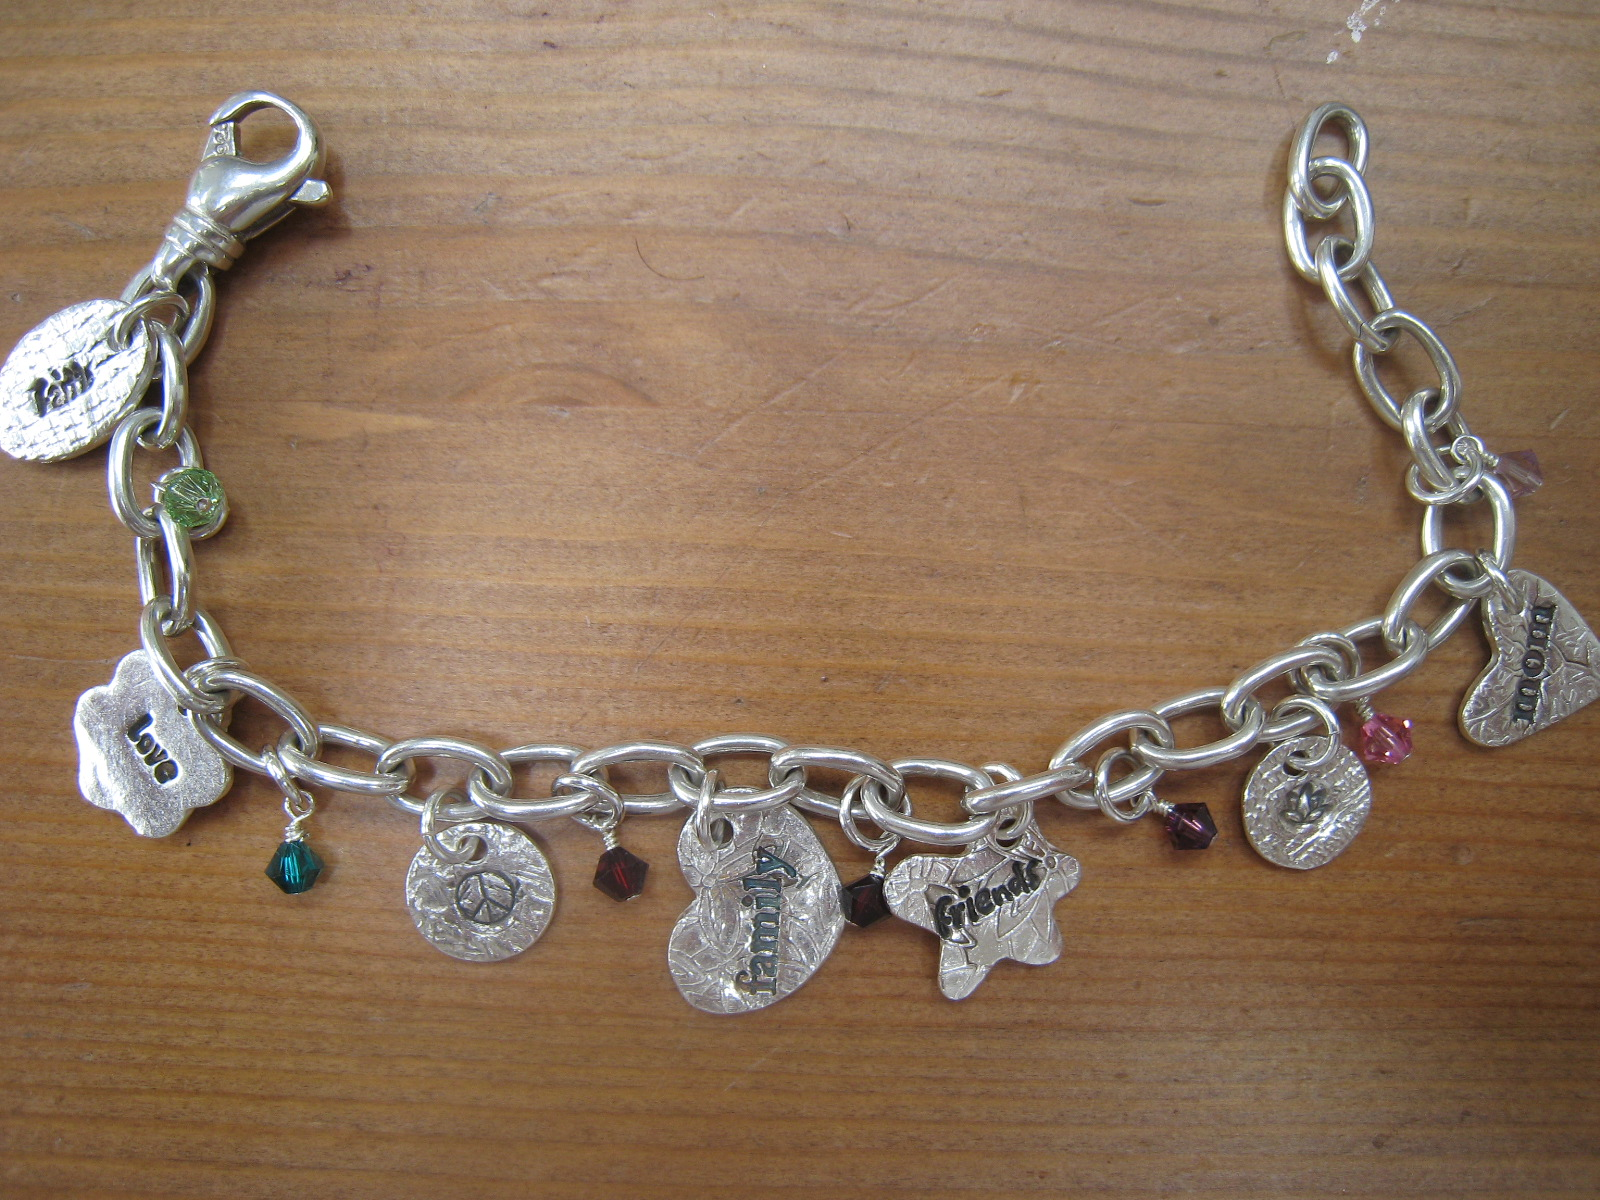 Artisan Jewelry by Claudia Amling Designs Charm Necklaces